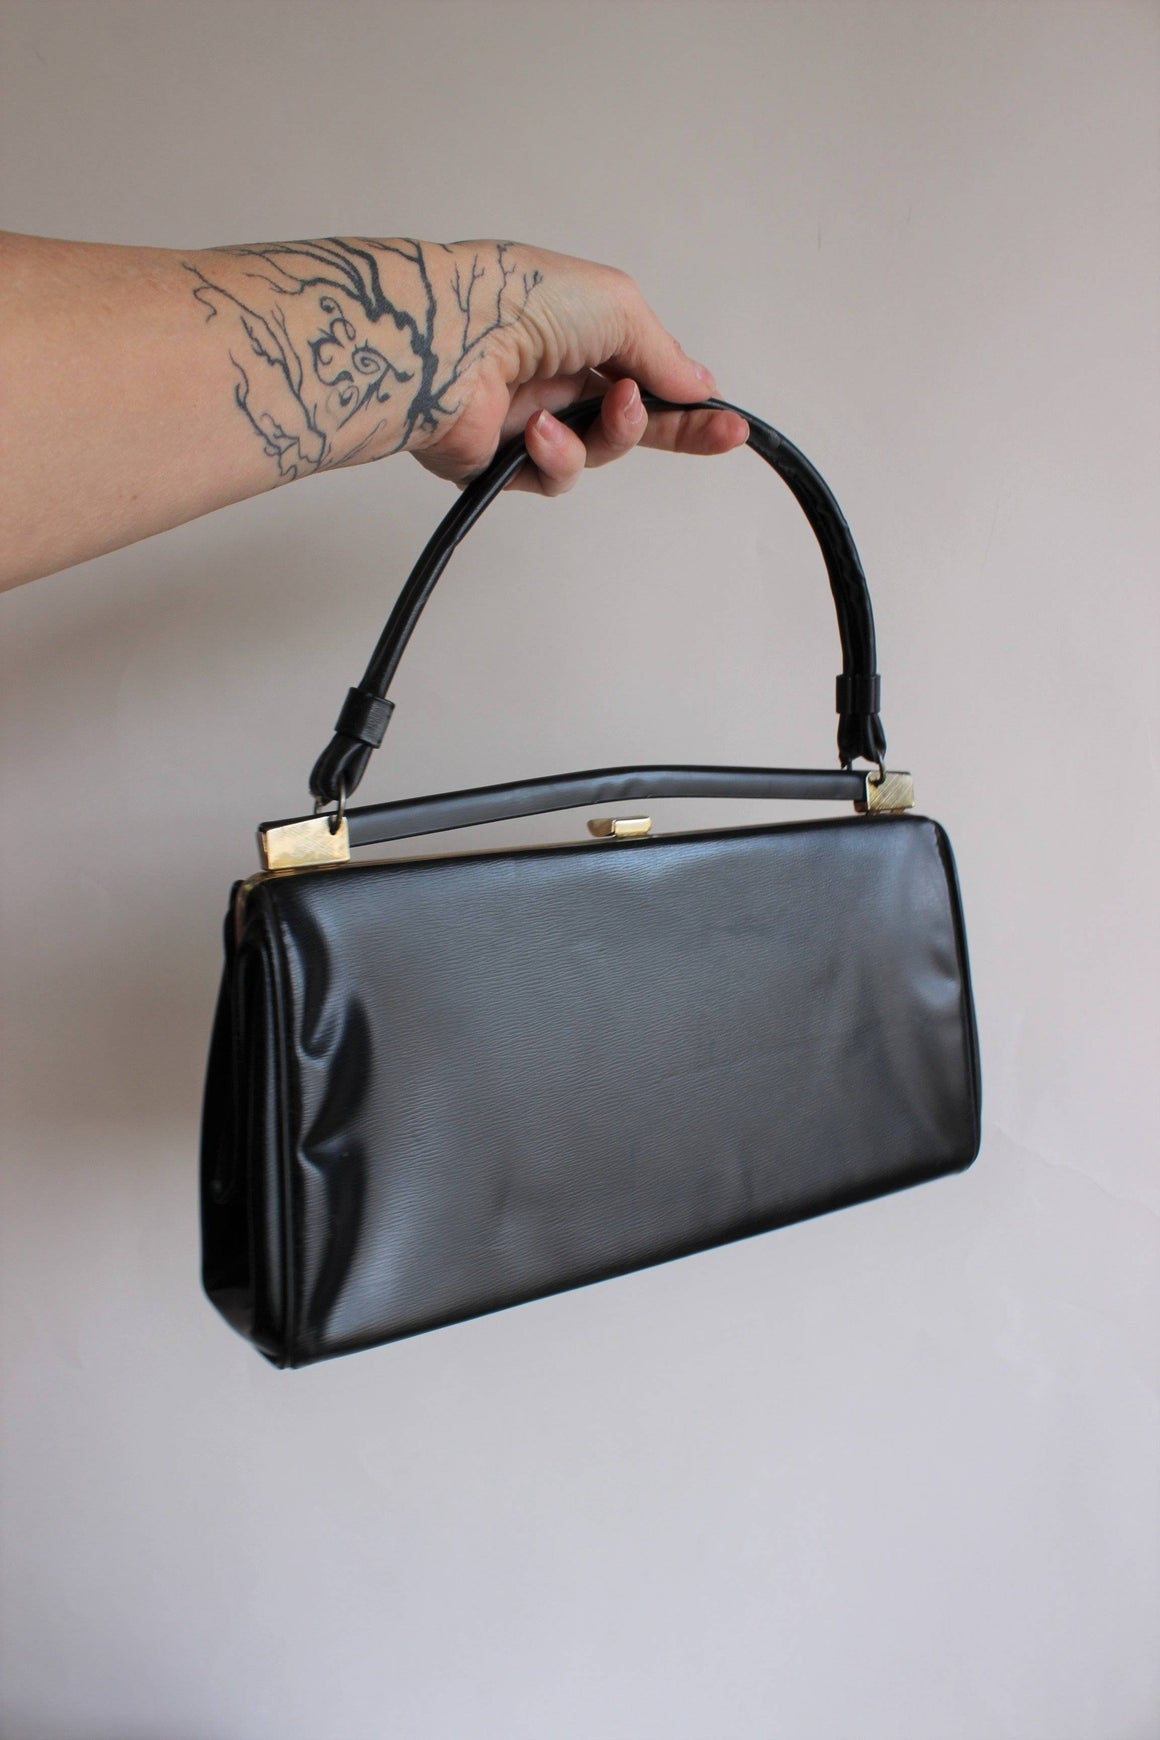 Vintage 1960s Black Honey Bag Purse